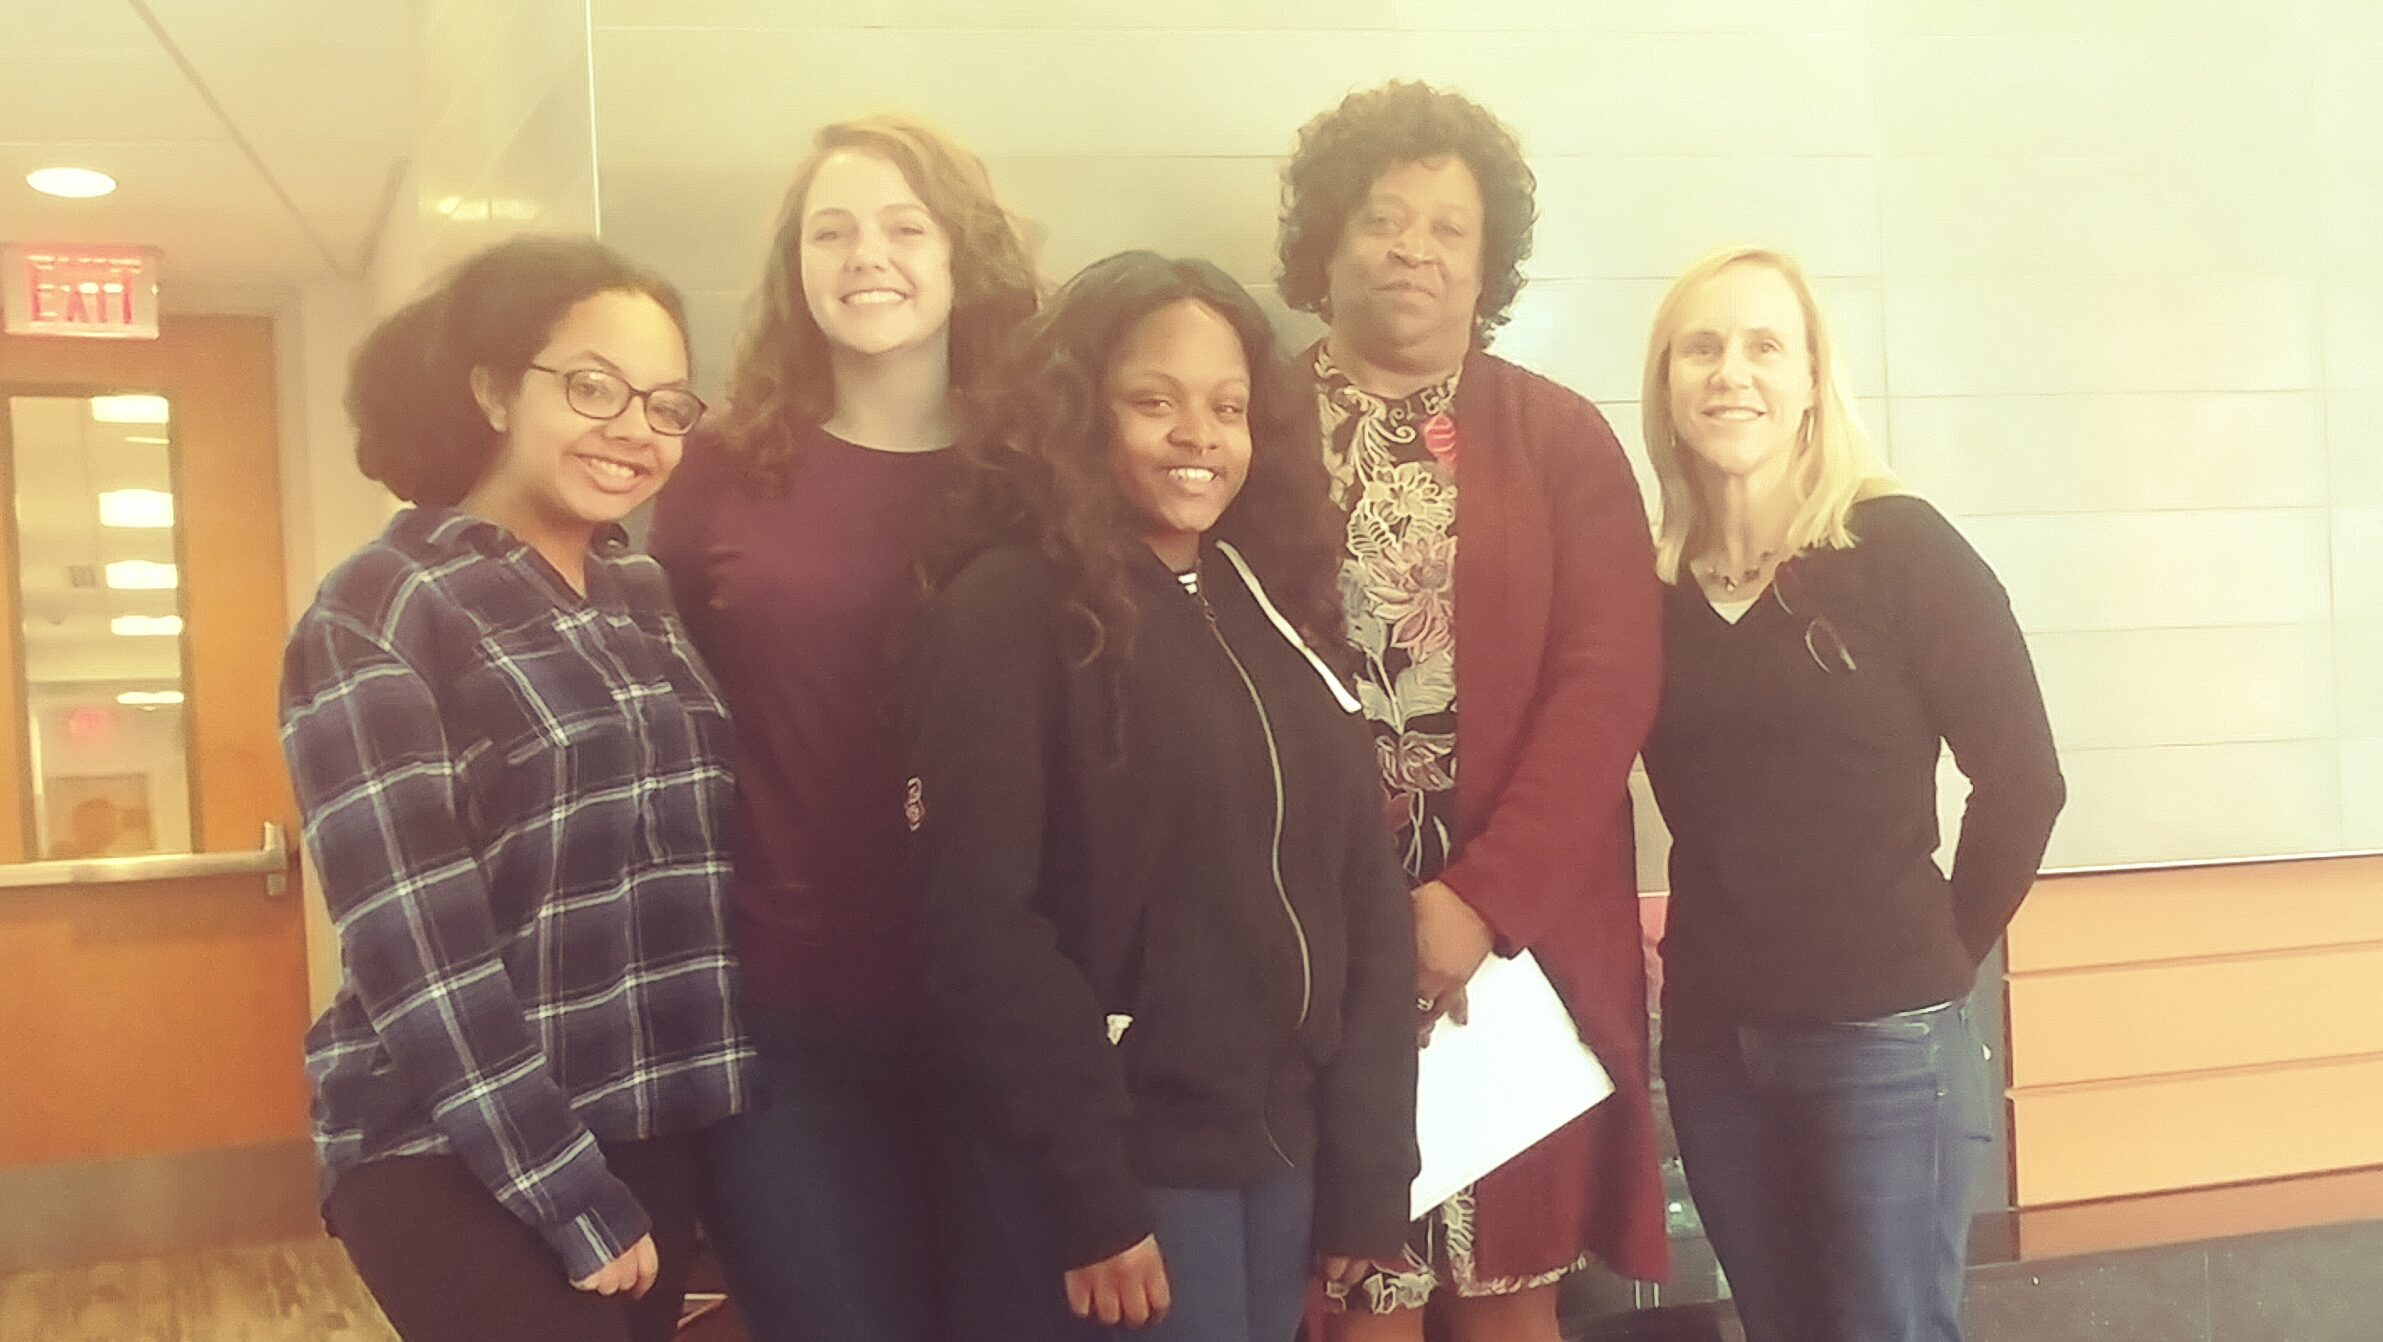 Dr. McLean serves as a mentor for the Chancellor's Leadership Development Program. Pictured is her mentee group (l-r) Manika Hemmerich, Kalynne Turner, Jai'Lynne Wilburn, Dr. McLean, Dr. Heather Patisaul (the other group mentor).